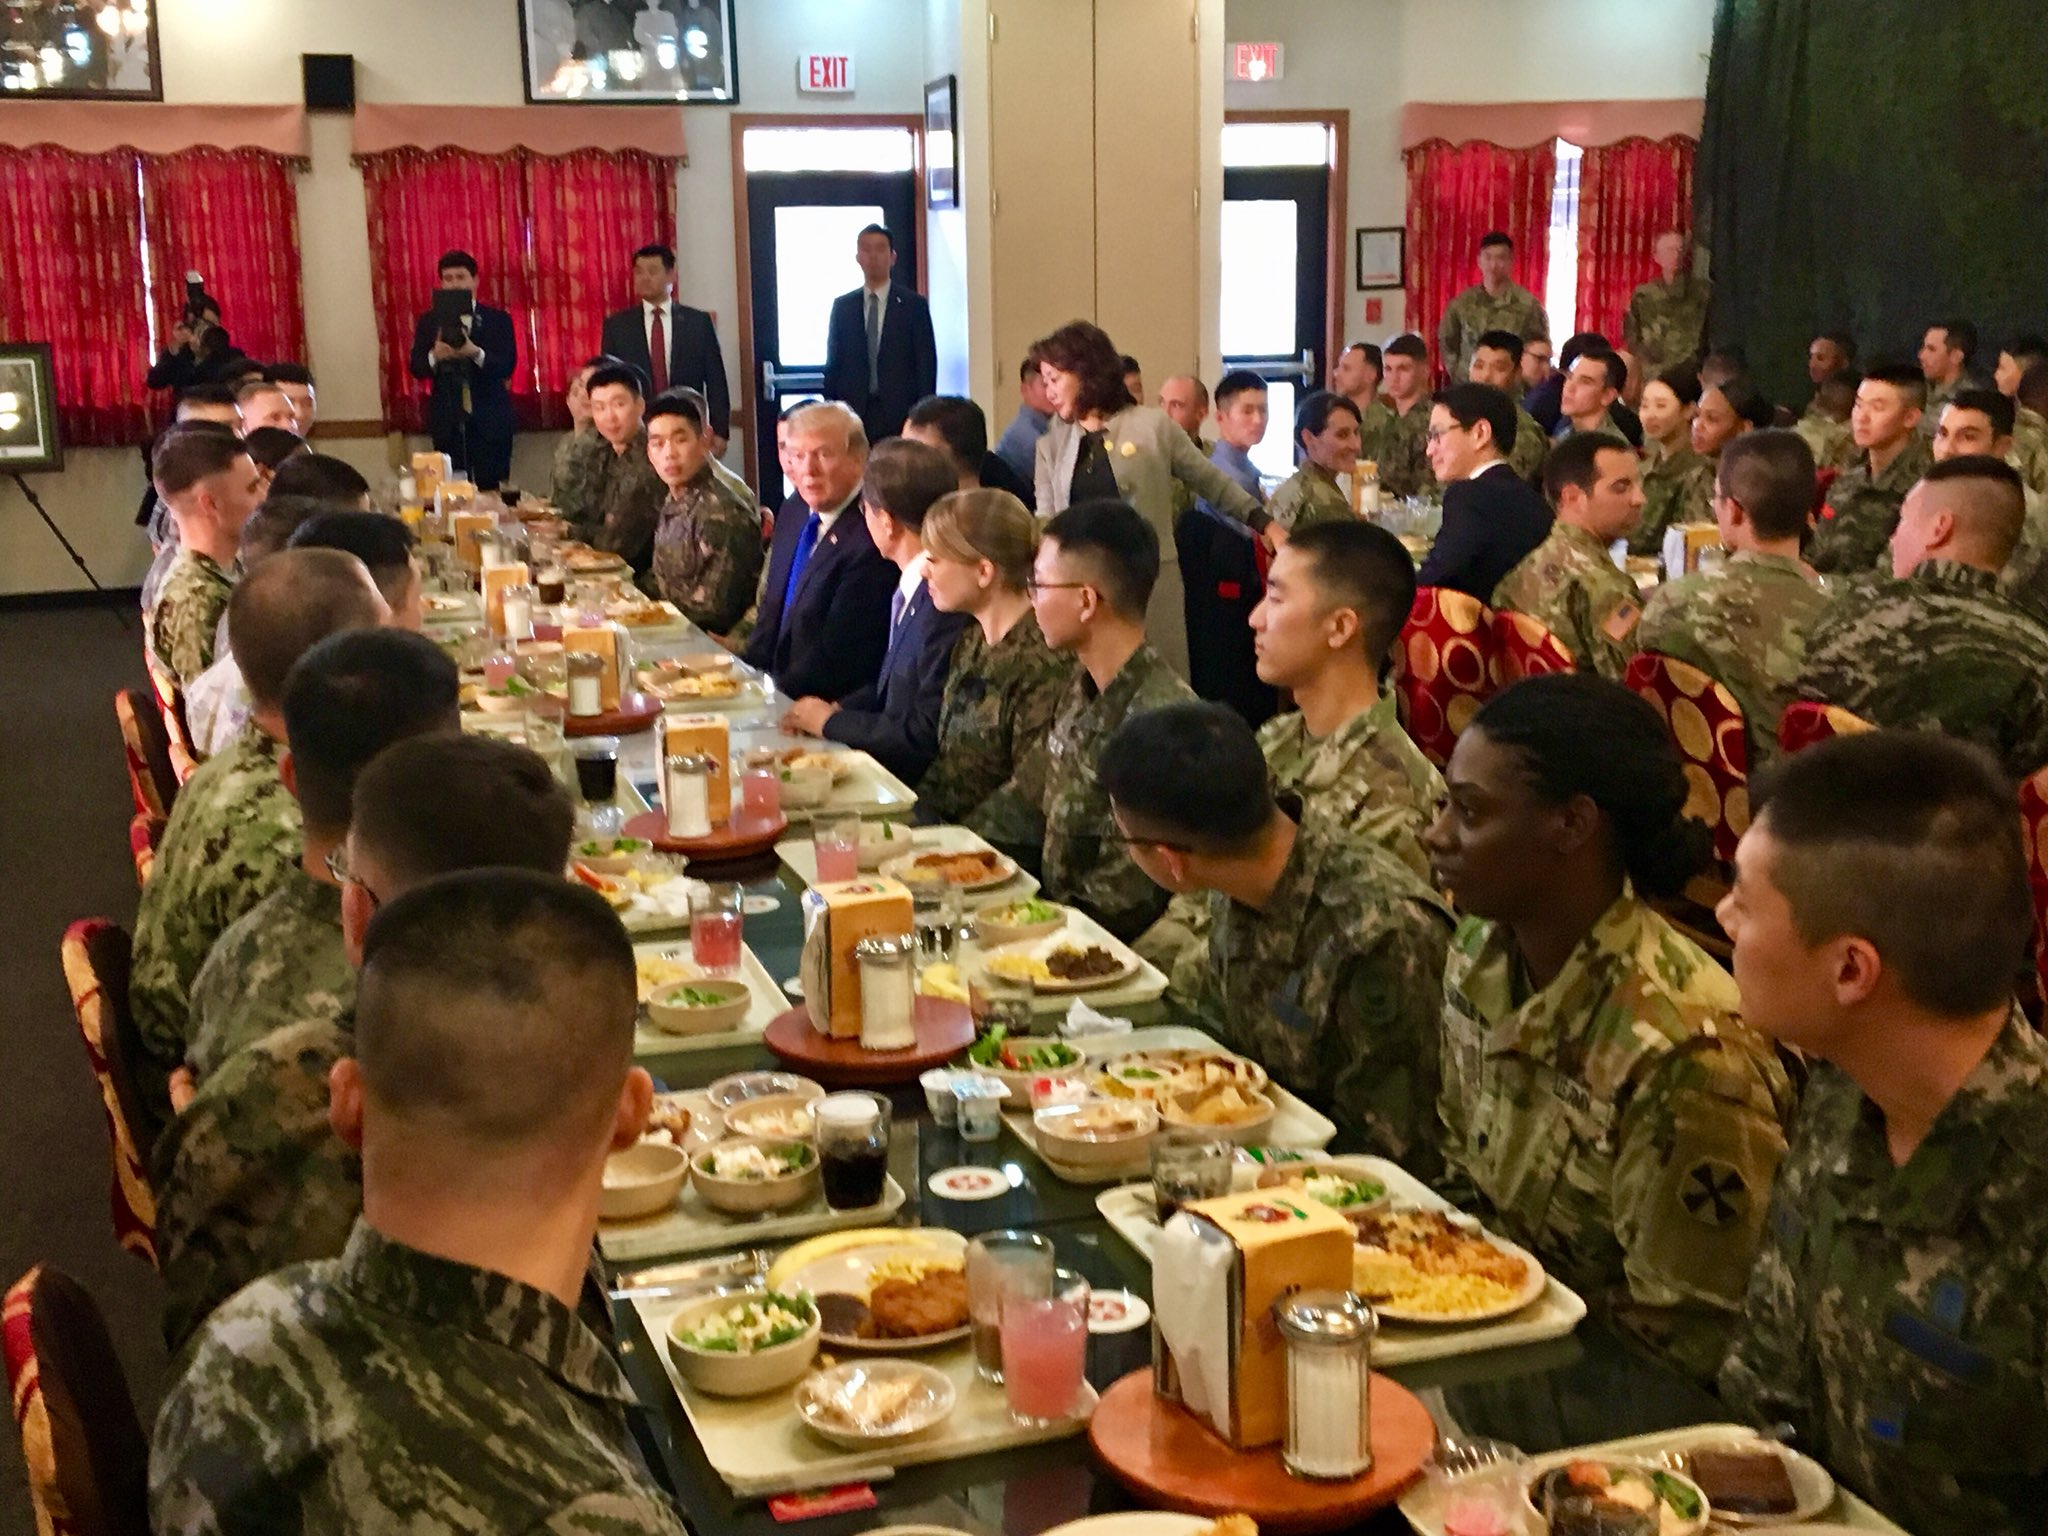 .@POTUS dines with our troops at Camp Humphreys in South Korea. #Loveourtroops! https://t.co/zbBOV6ln9S